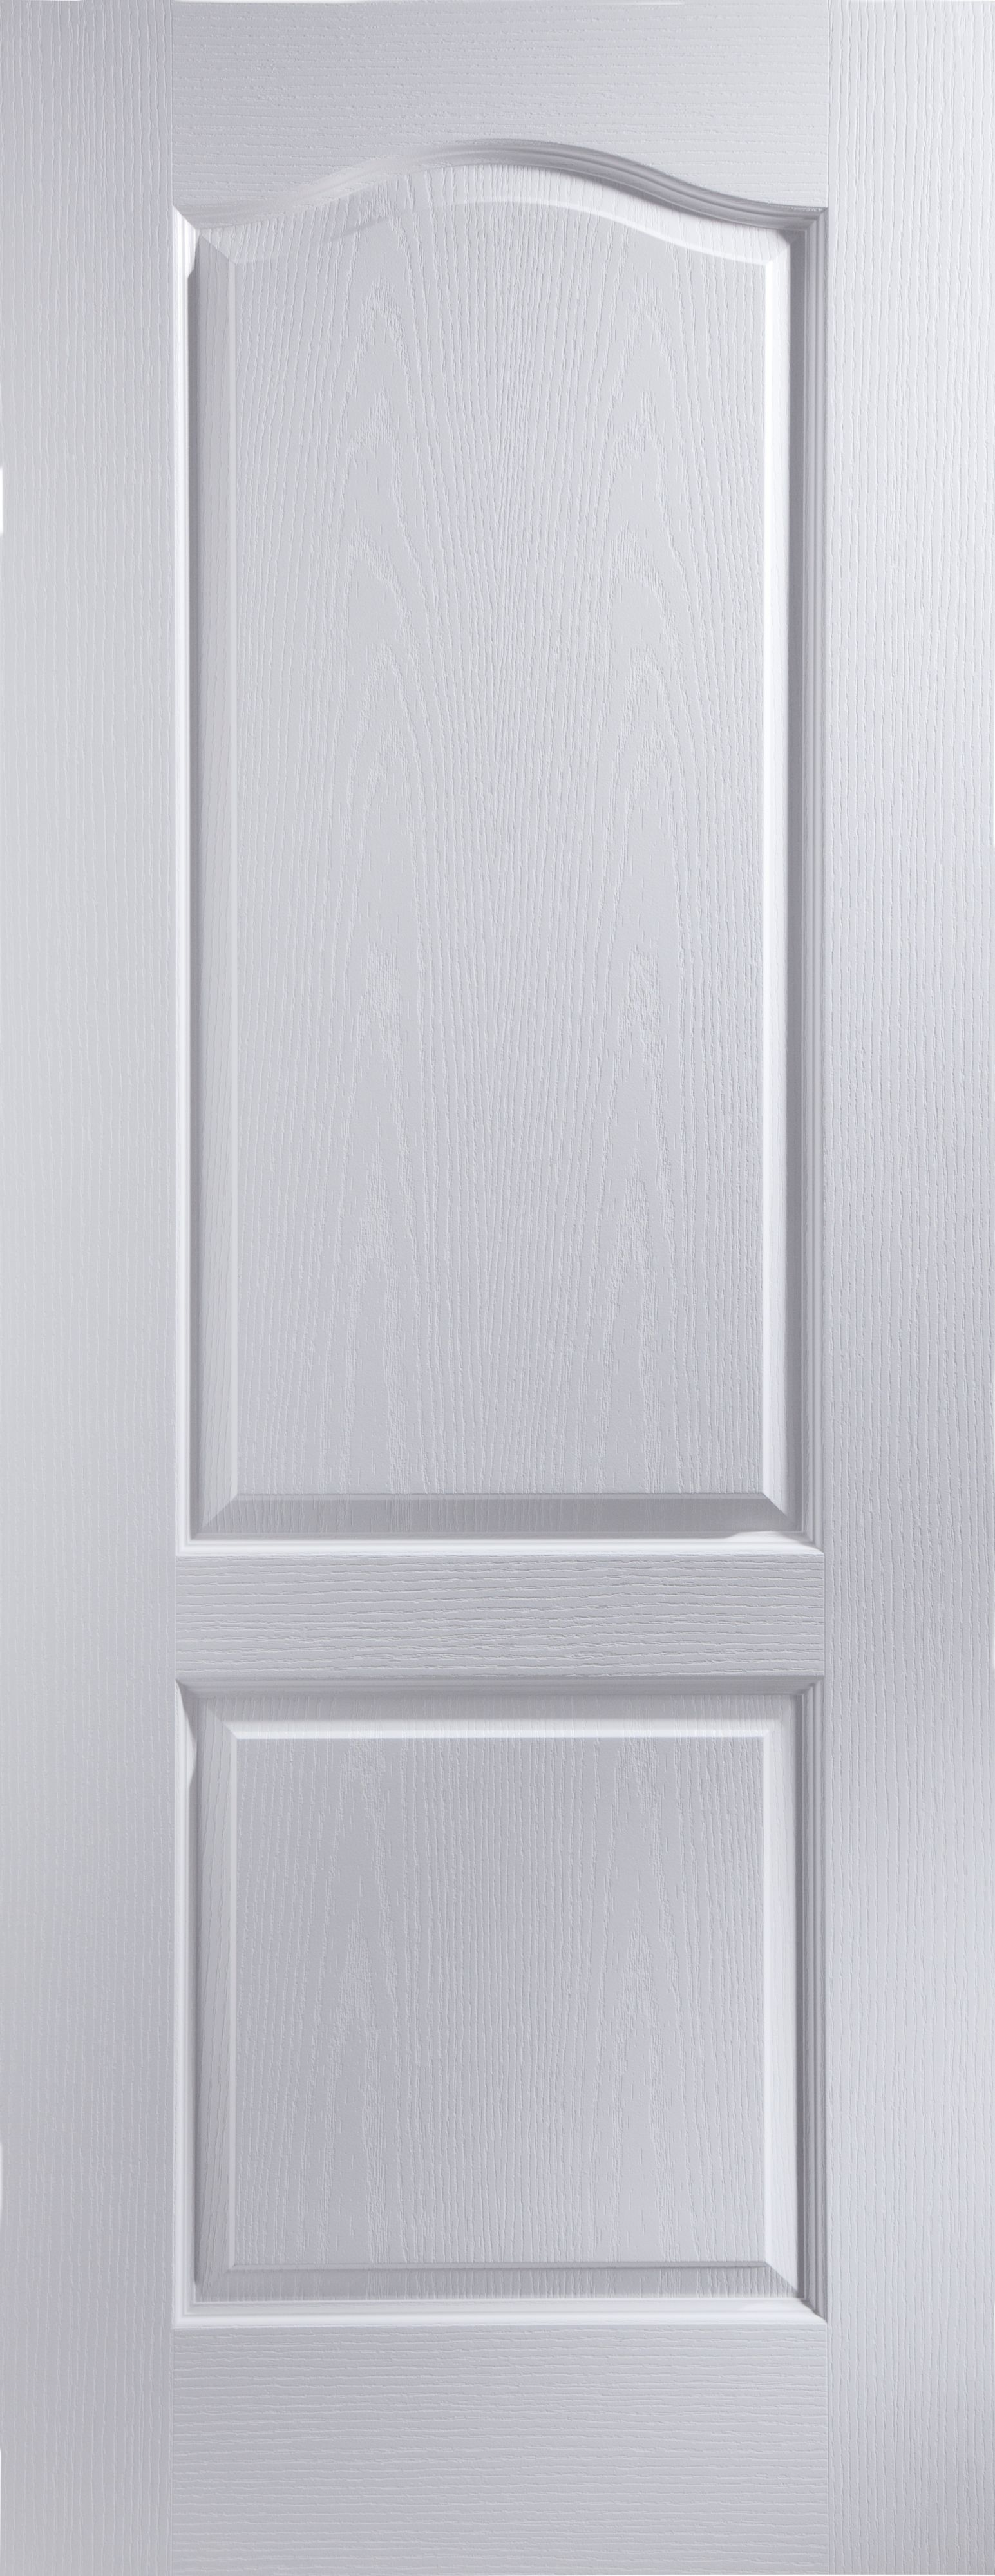 2 panel arched pre painted white woodgrain unglazed internal 2 panel arched pre painted white woodgrain unglazed internal standard door h1981mm w838mm departments diy at bq planetlyrics Image collections